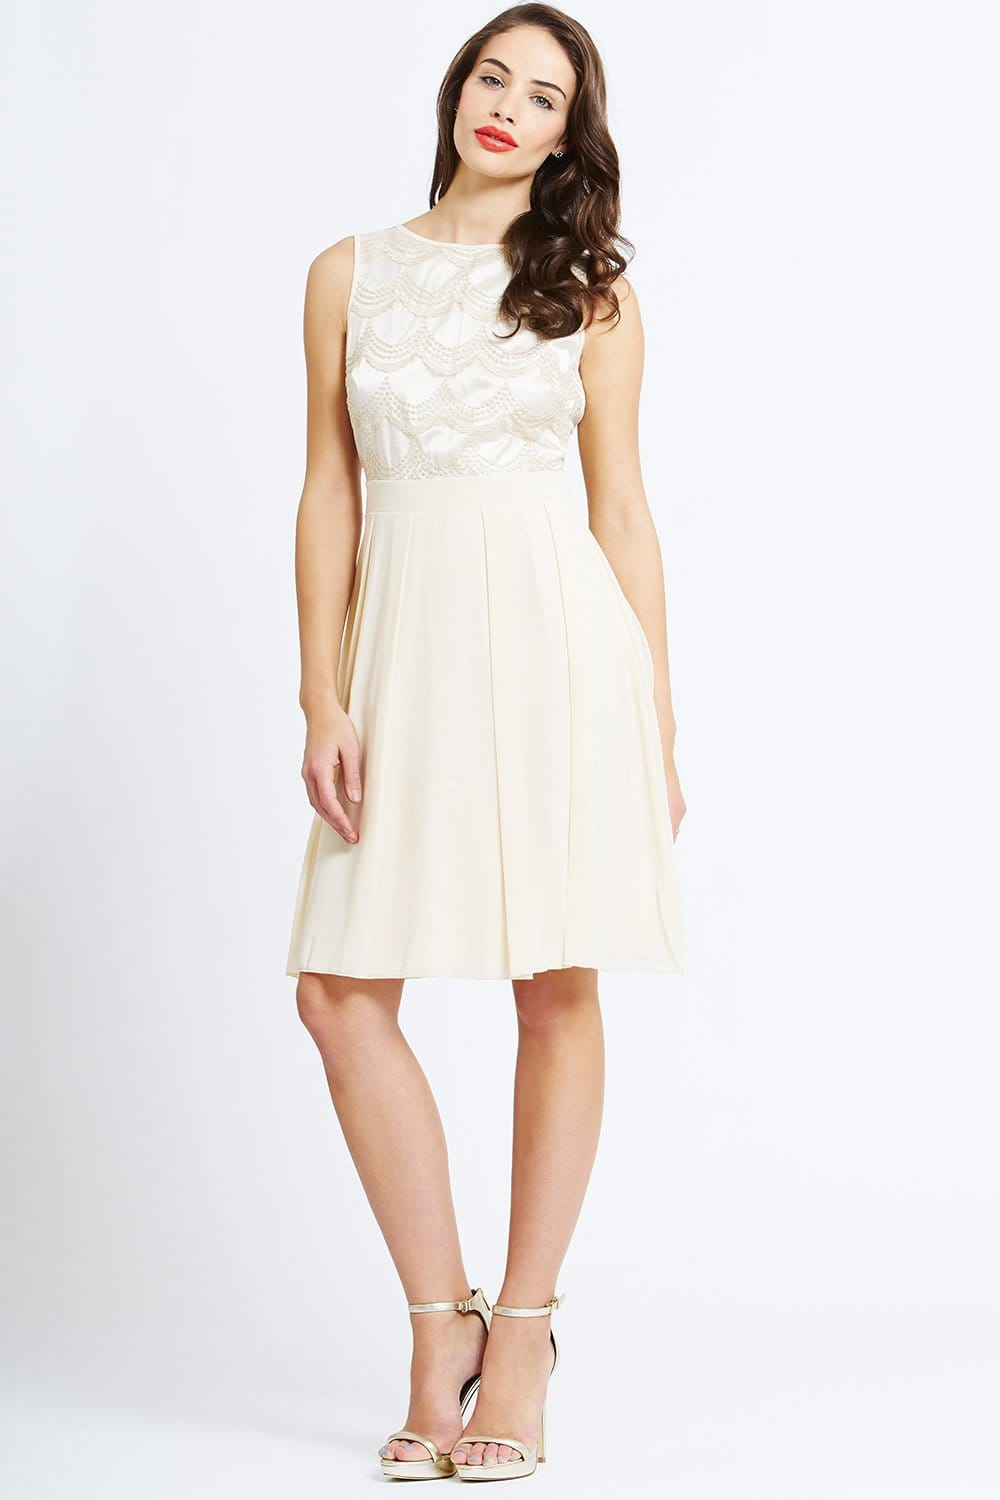 Cream Floral Lace Applique Fit And Flare Dress From